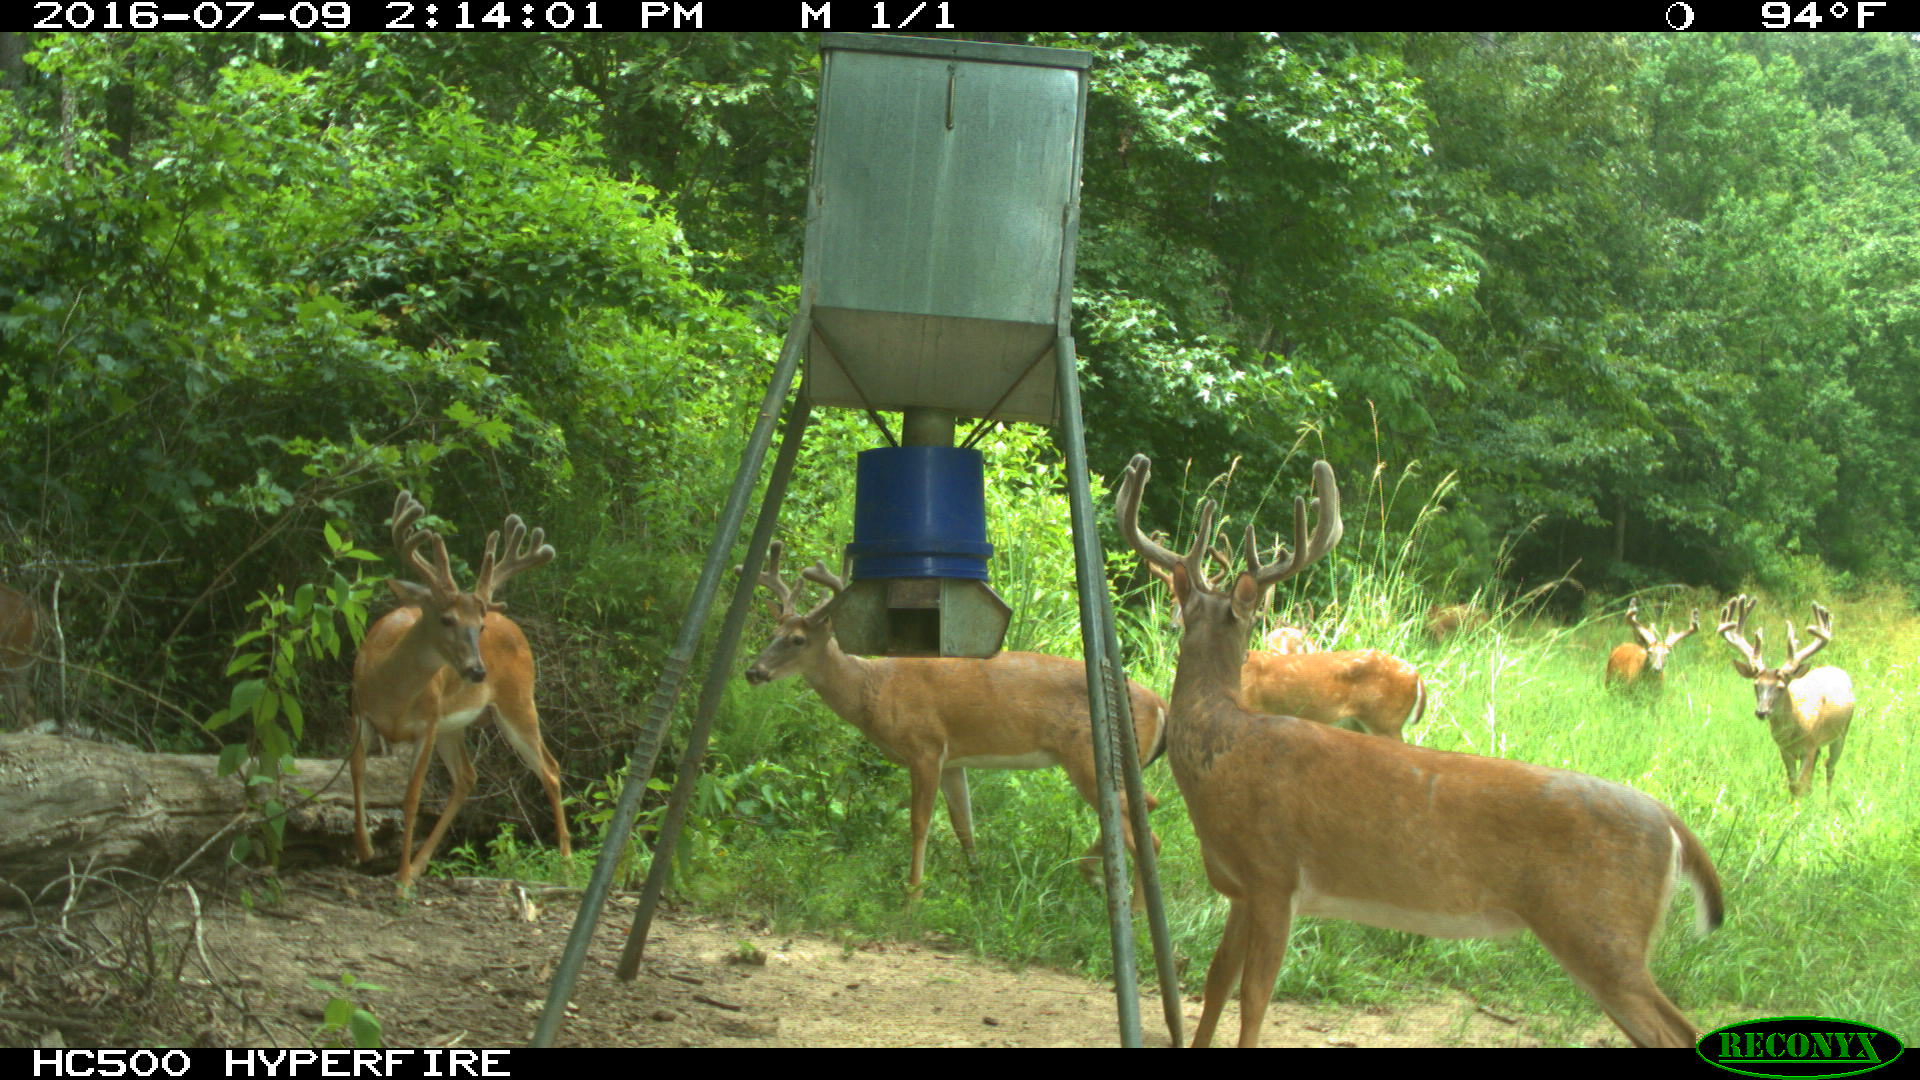 boss feeder finally deer review protein this out feeders feeding a buck image report habitat wildlife updated